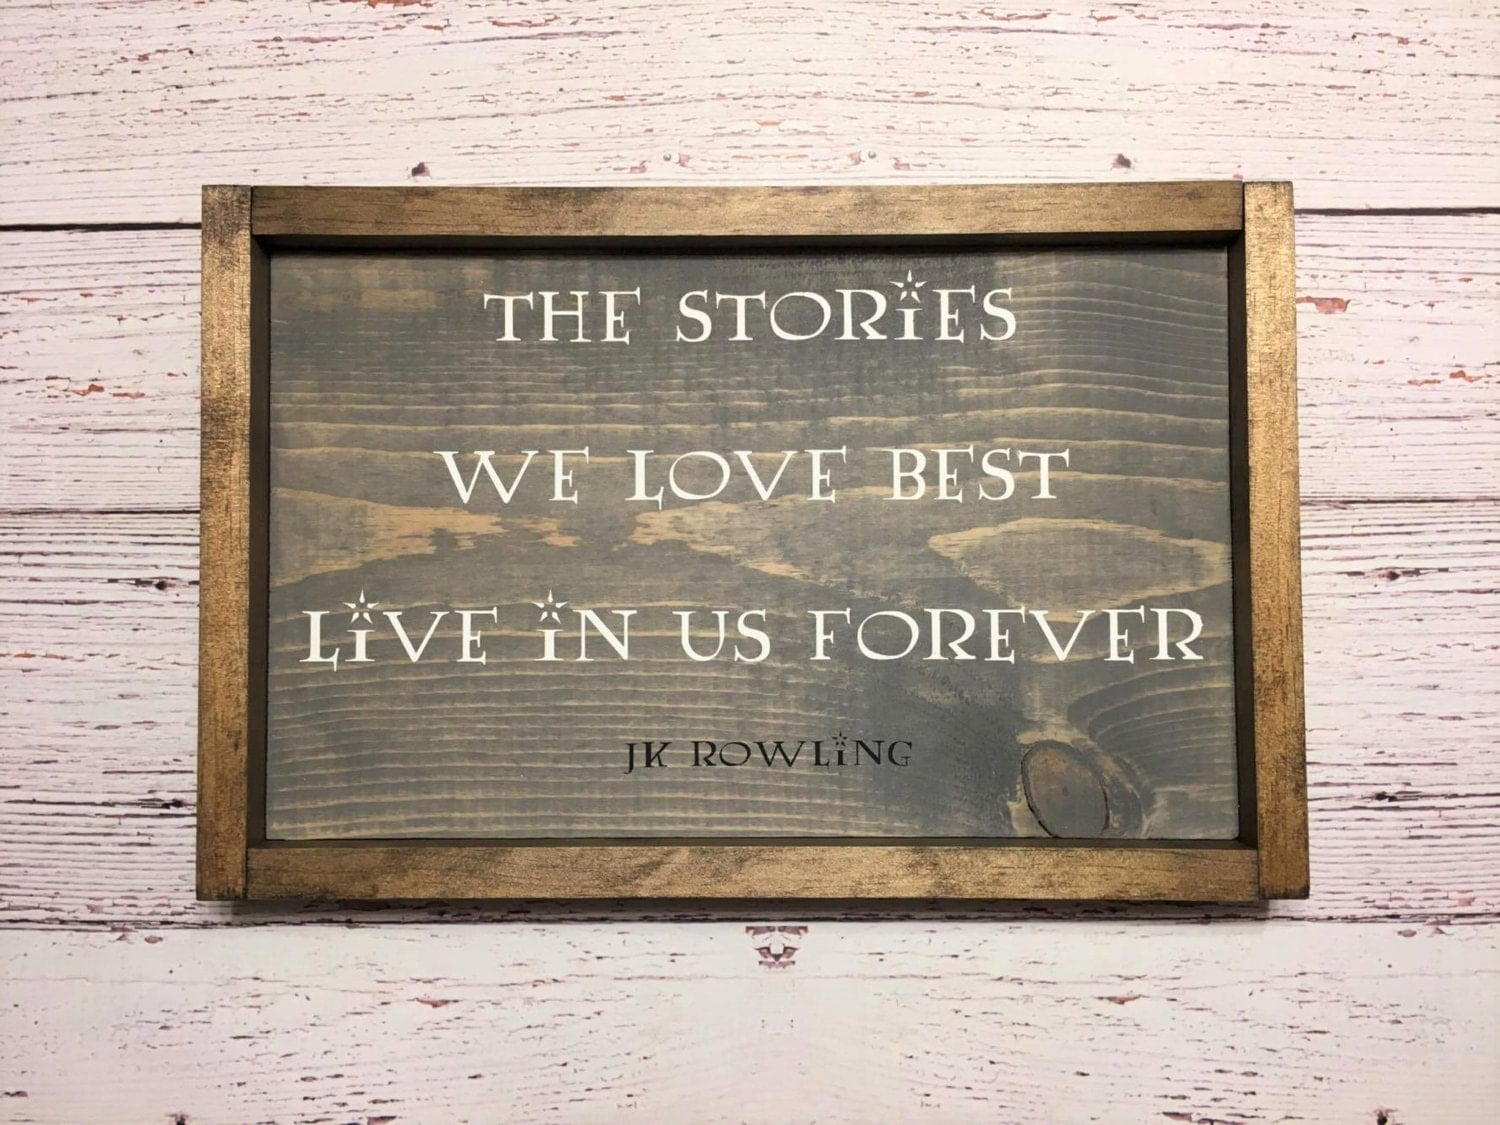 jk rowling quote harry potter framed wood sign jk rowling quote wall art the stories we love best live in us forever framed harry potter wall decor